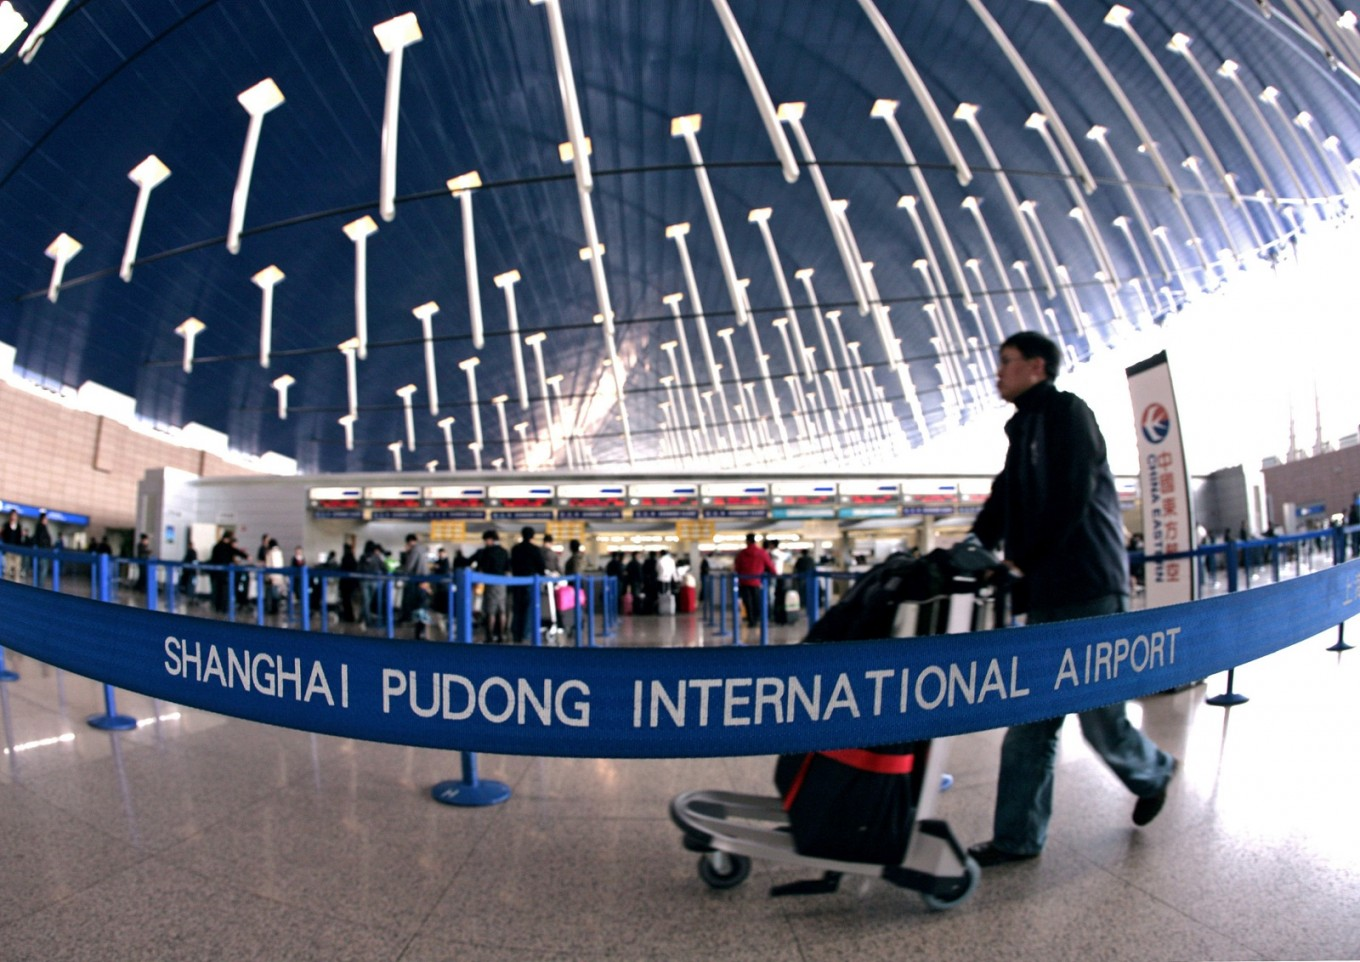 Shanghai airport counts on duty-free shops for valuation premium